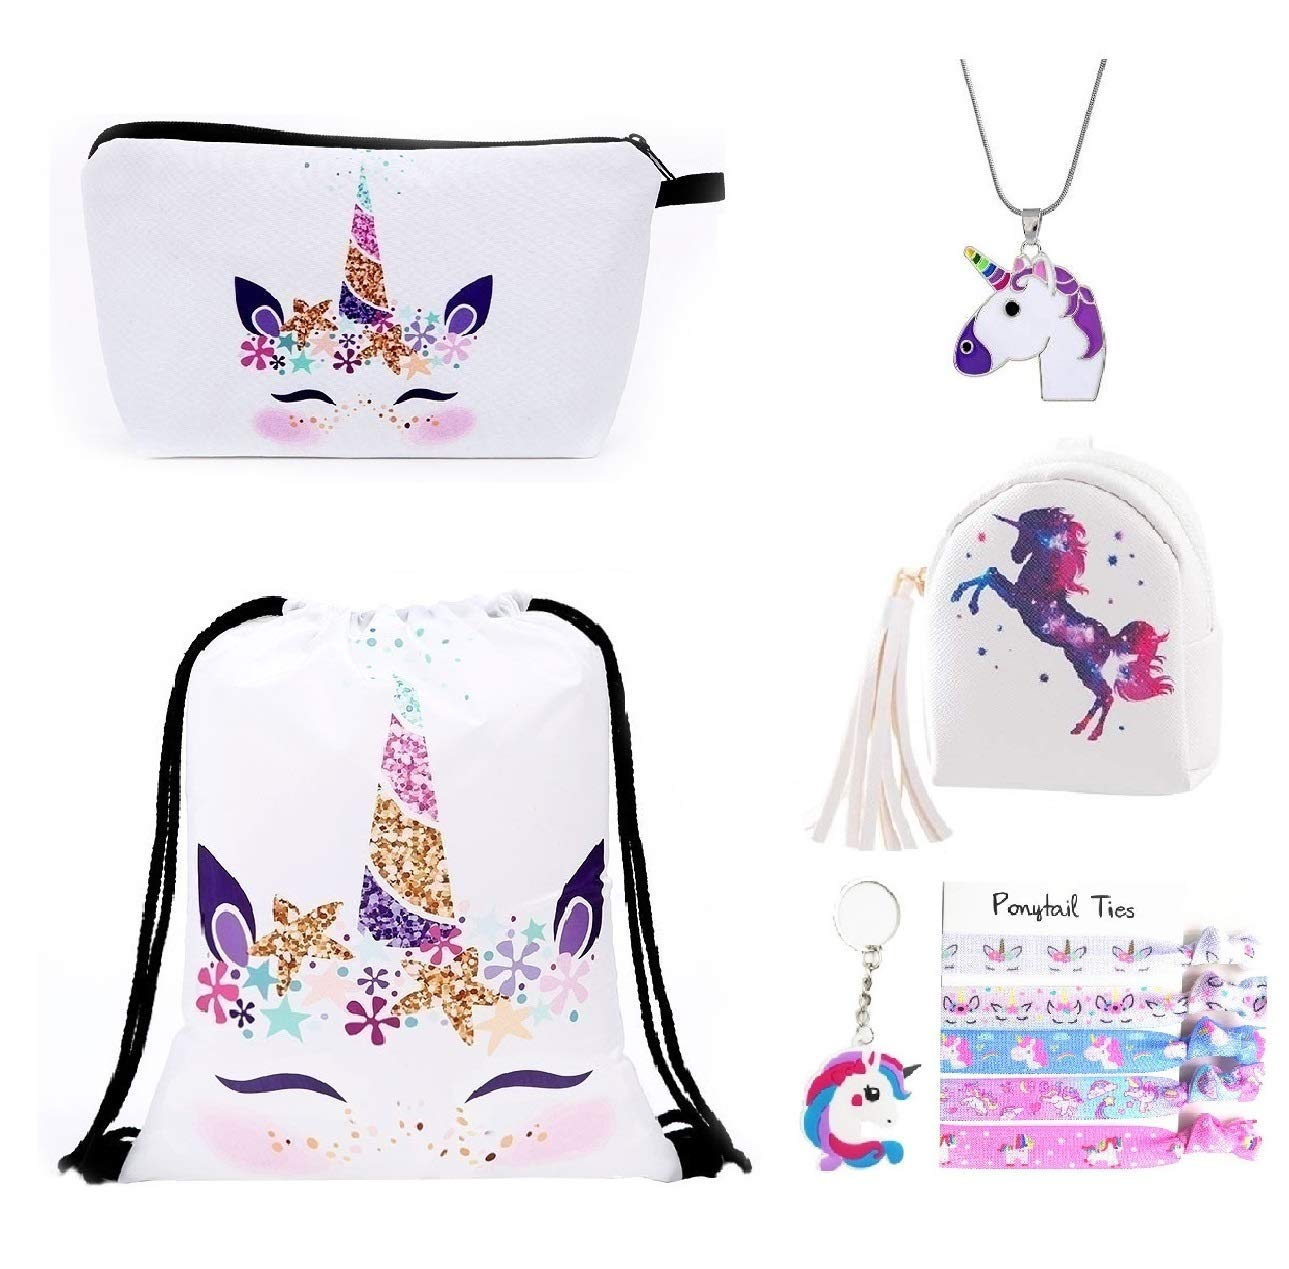 Fanovo Pink Rainbow Unicorn Backpack, Mini Travel Backpack, Shiny Backpack for Girls, Super Cool Leather Daypack + Unicorn/Bracelet/Inspirational Necklace/Ring (A - Drawstring Set H)